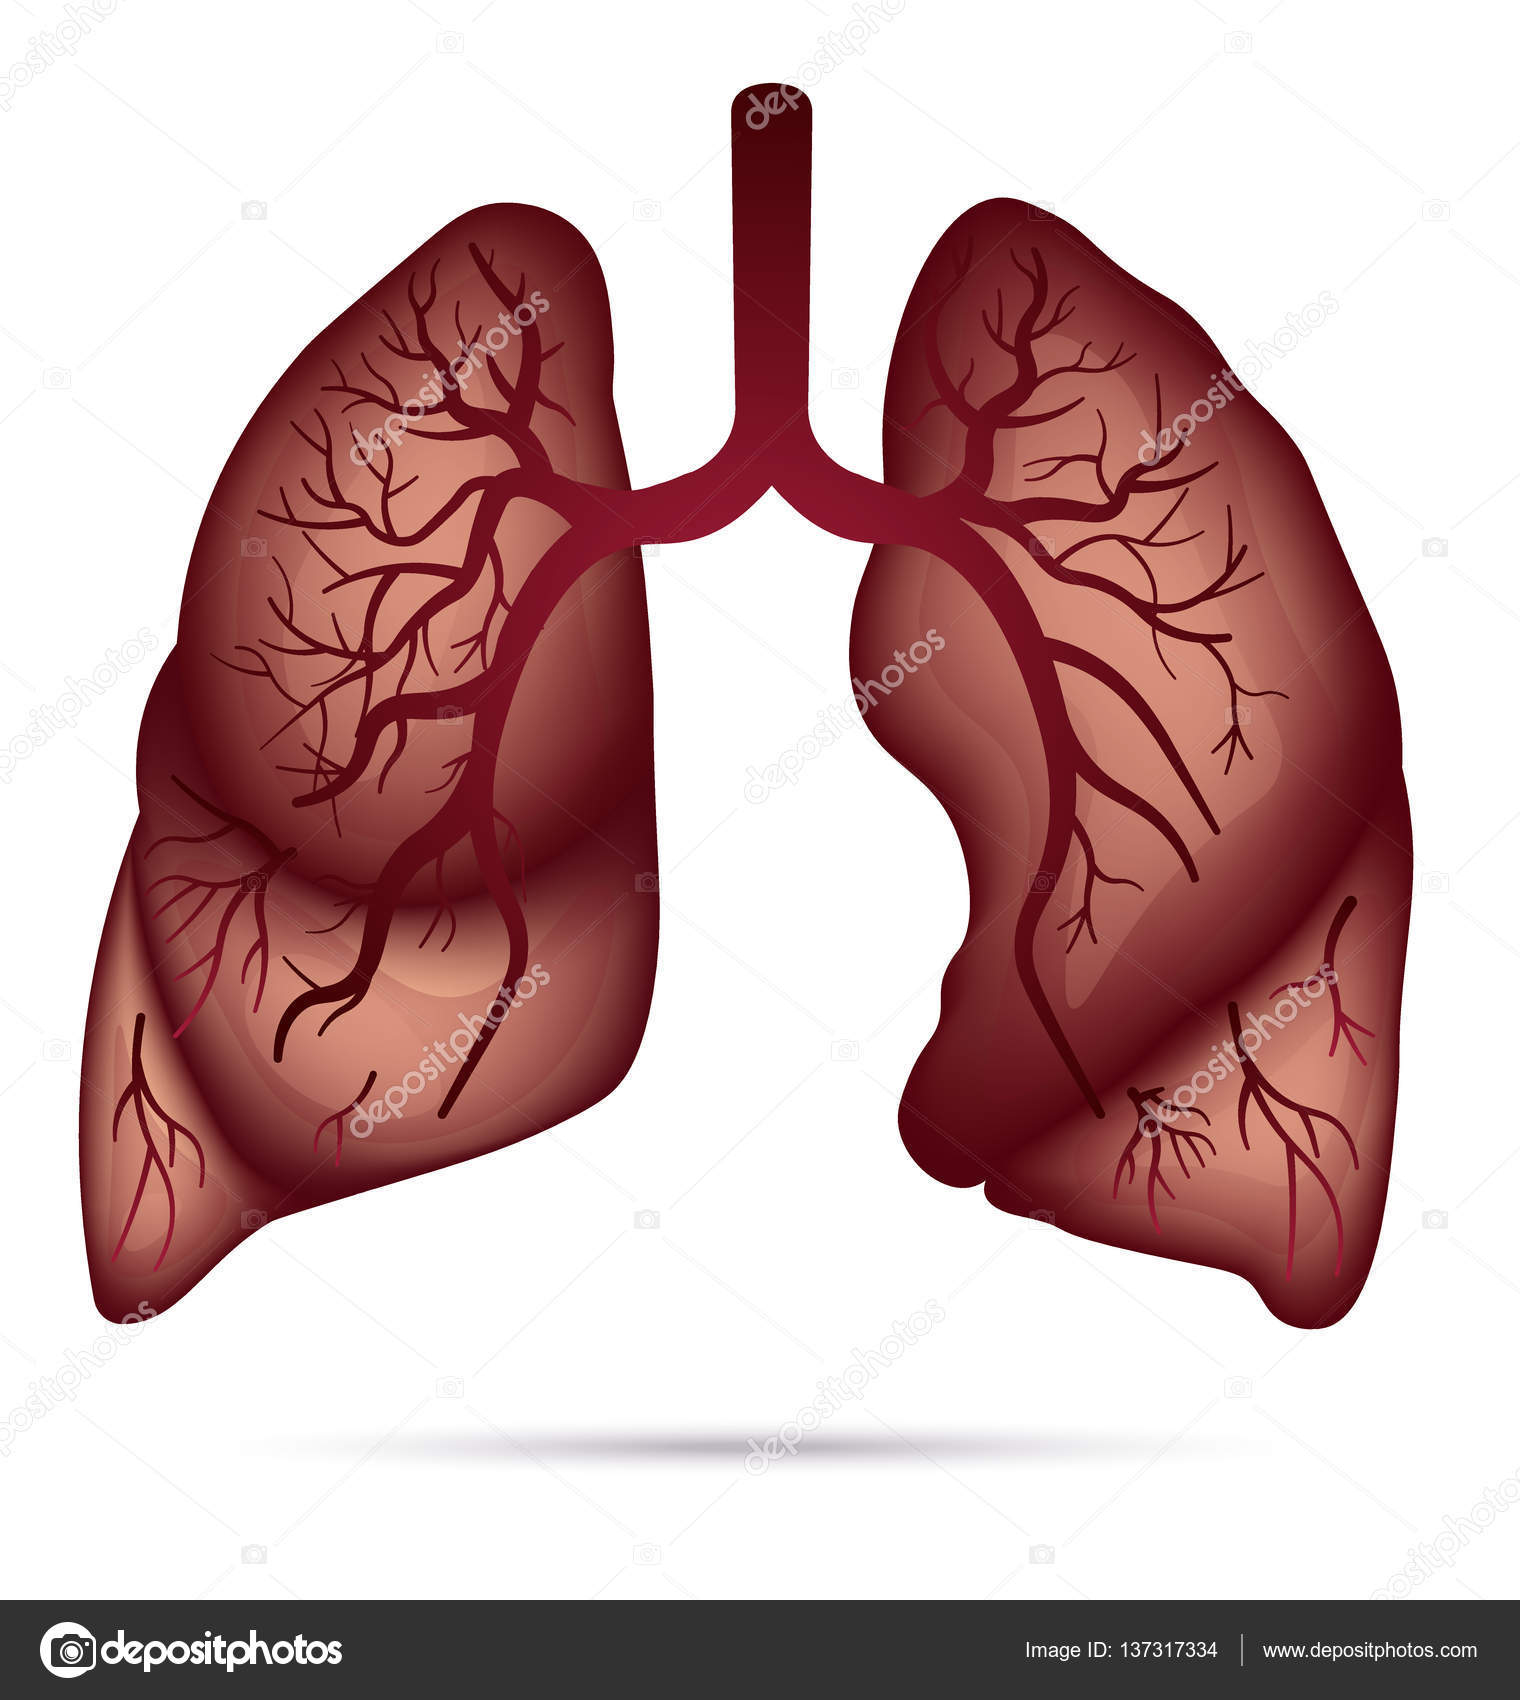 More Lung Disorders | BioNinja |Human Lungs With Asthma